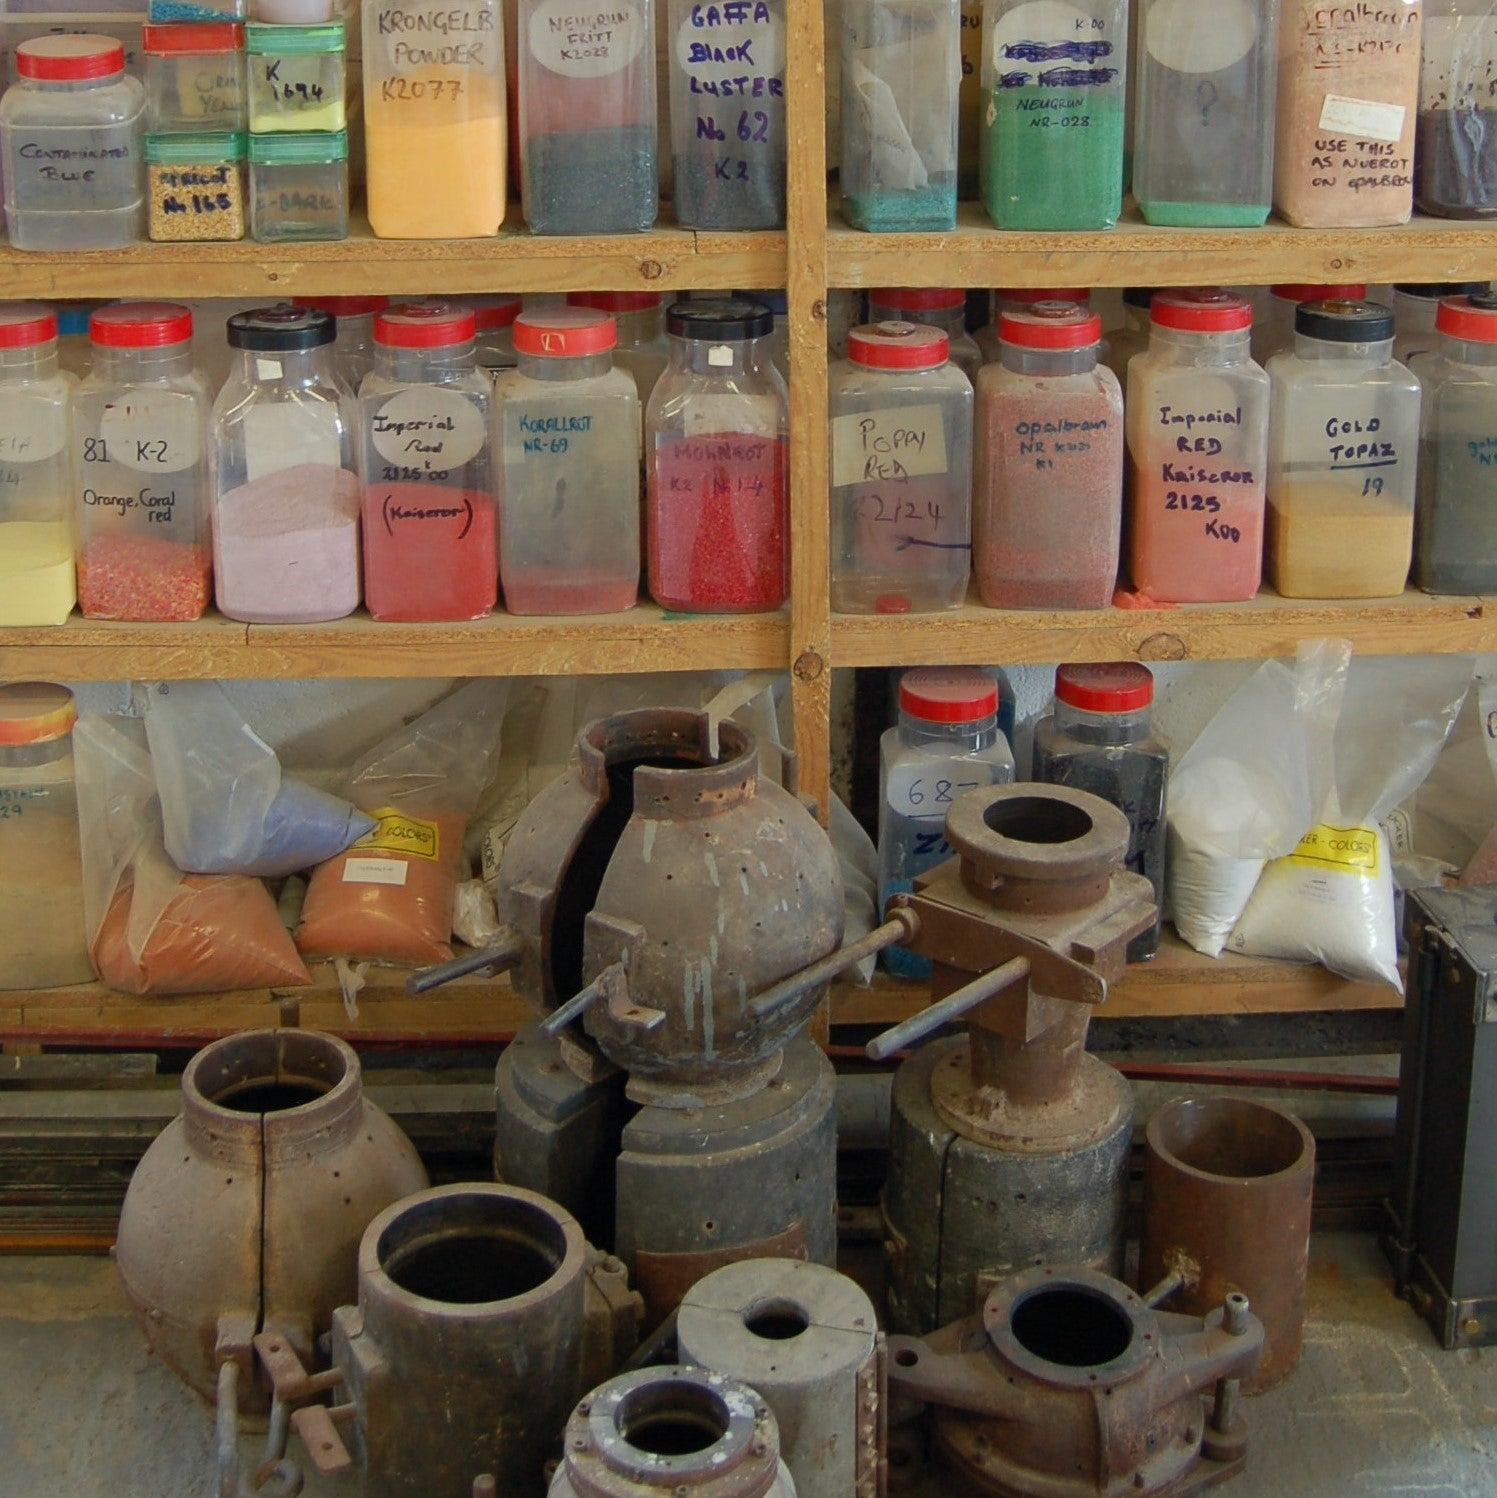 We have a selection of moulds which are used for making lampshades. We have a large variety of powders, fritts and bars.